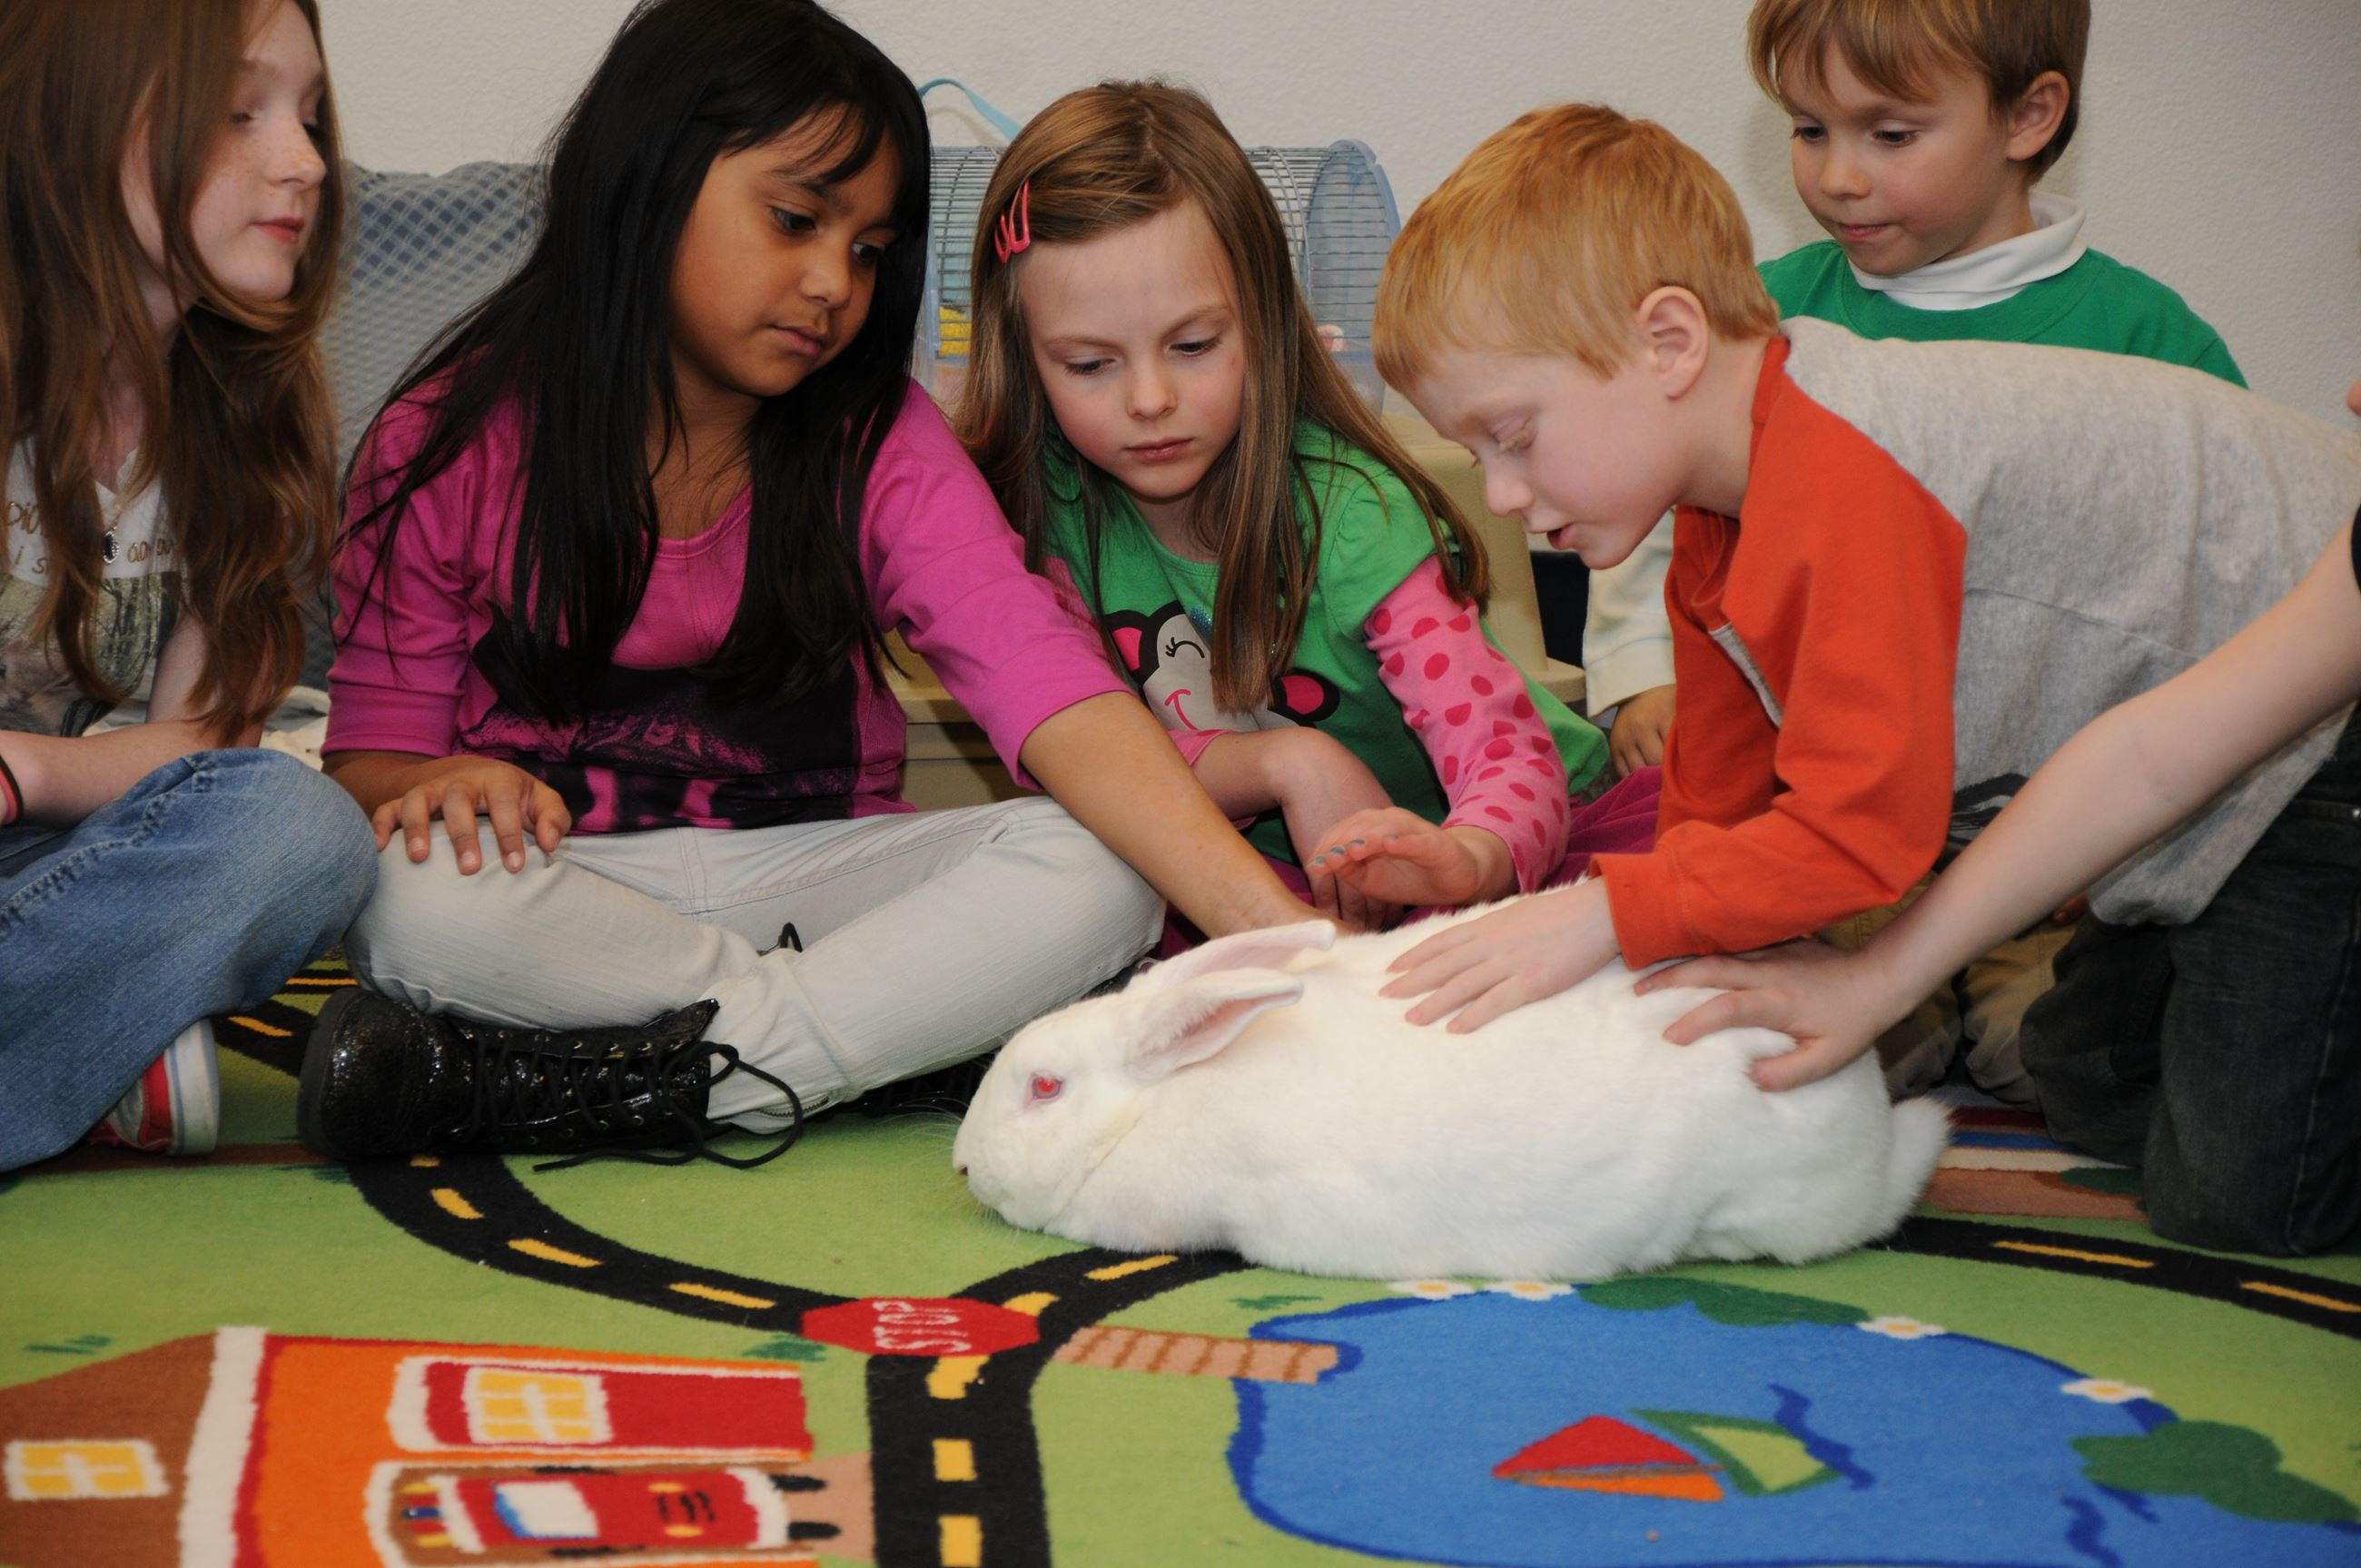 Children sit in a circle together and pet a large white rabbit